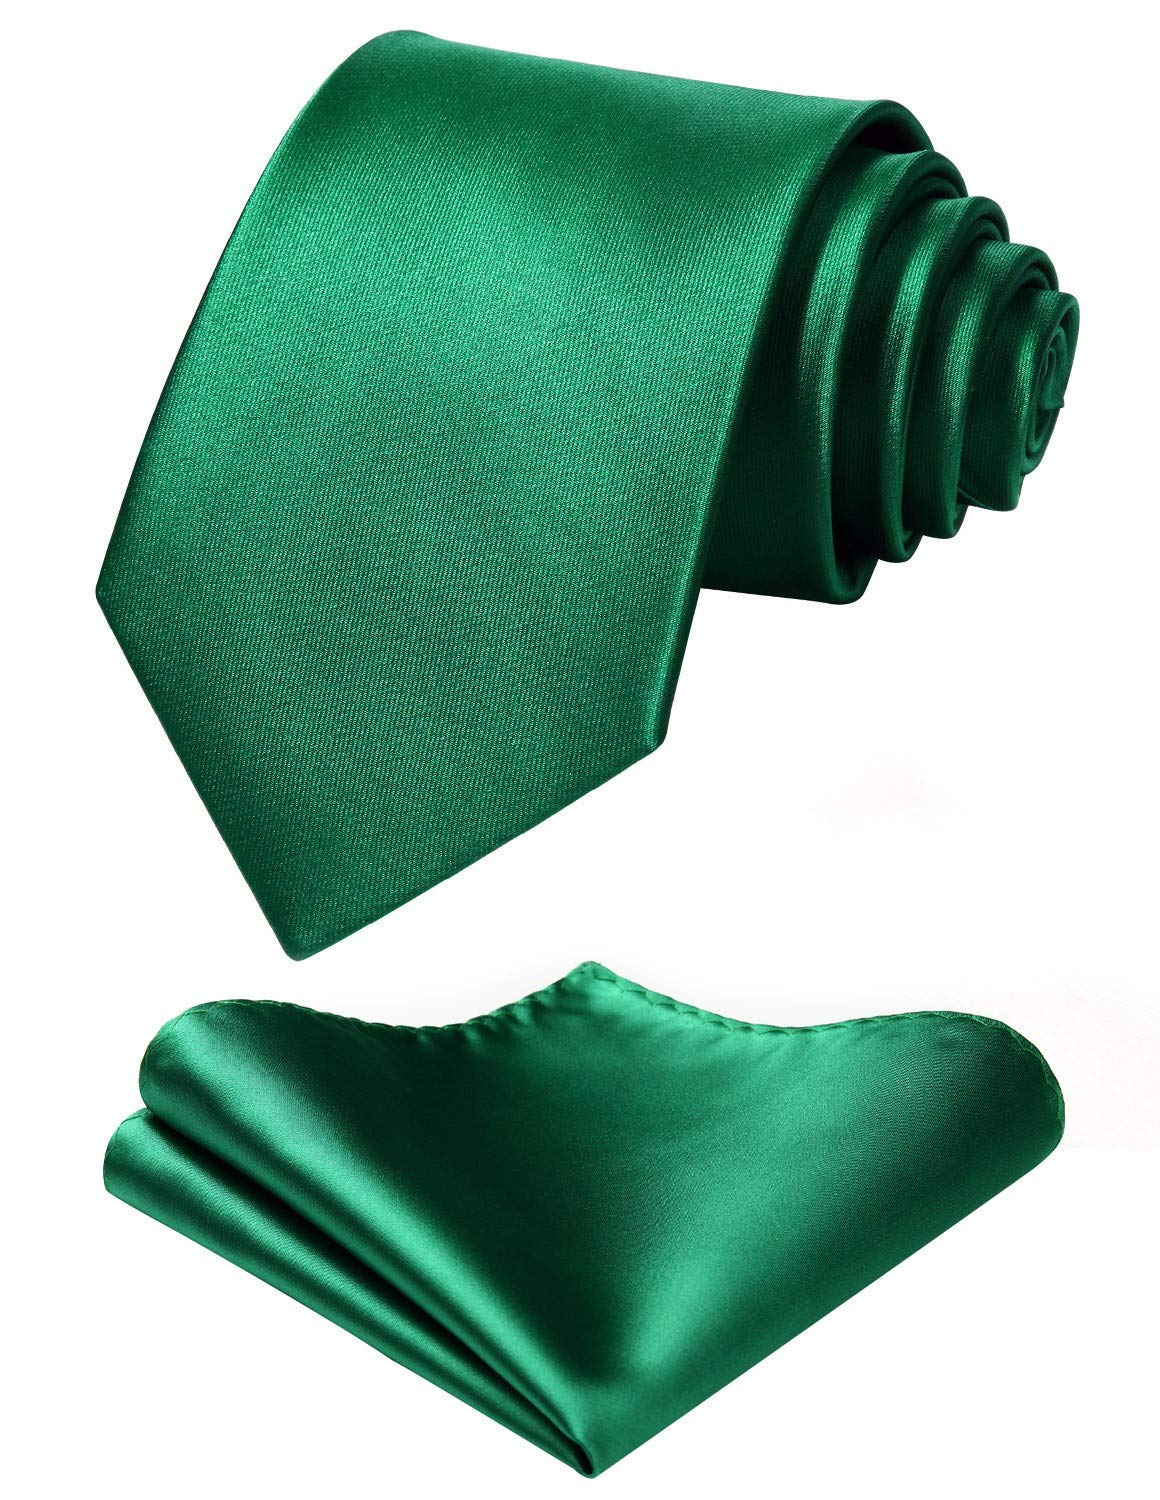 Mens Solid Green Tie Classic 3.4'' width Necktie and Pocket Square Set with Gift Box by HISDERN by HISDERN